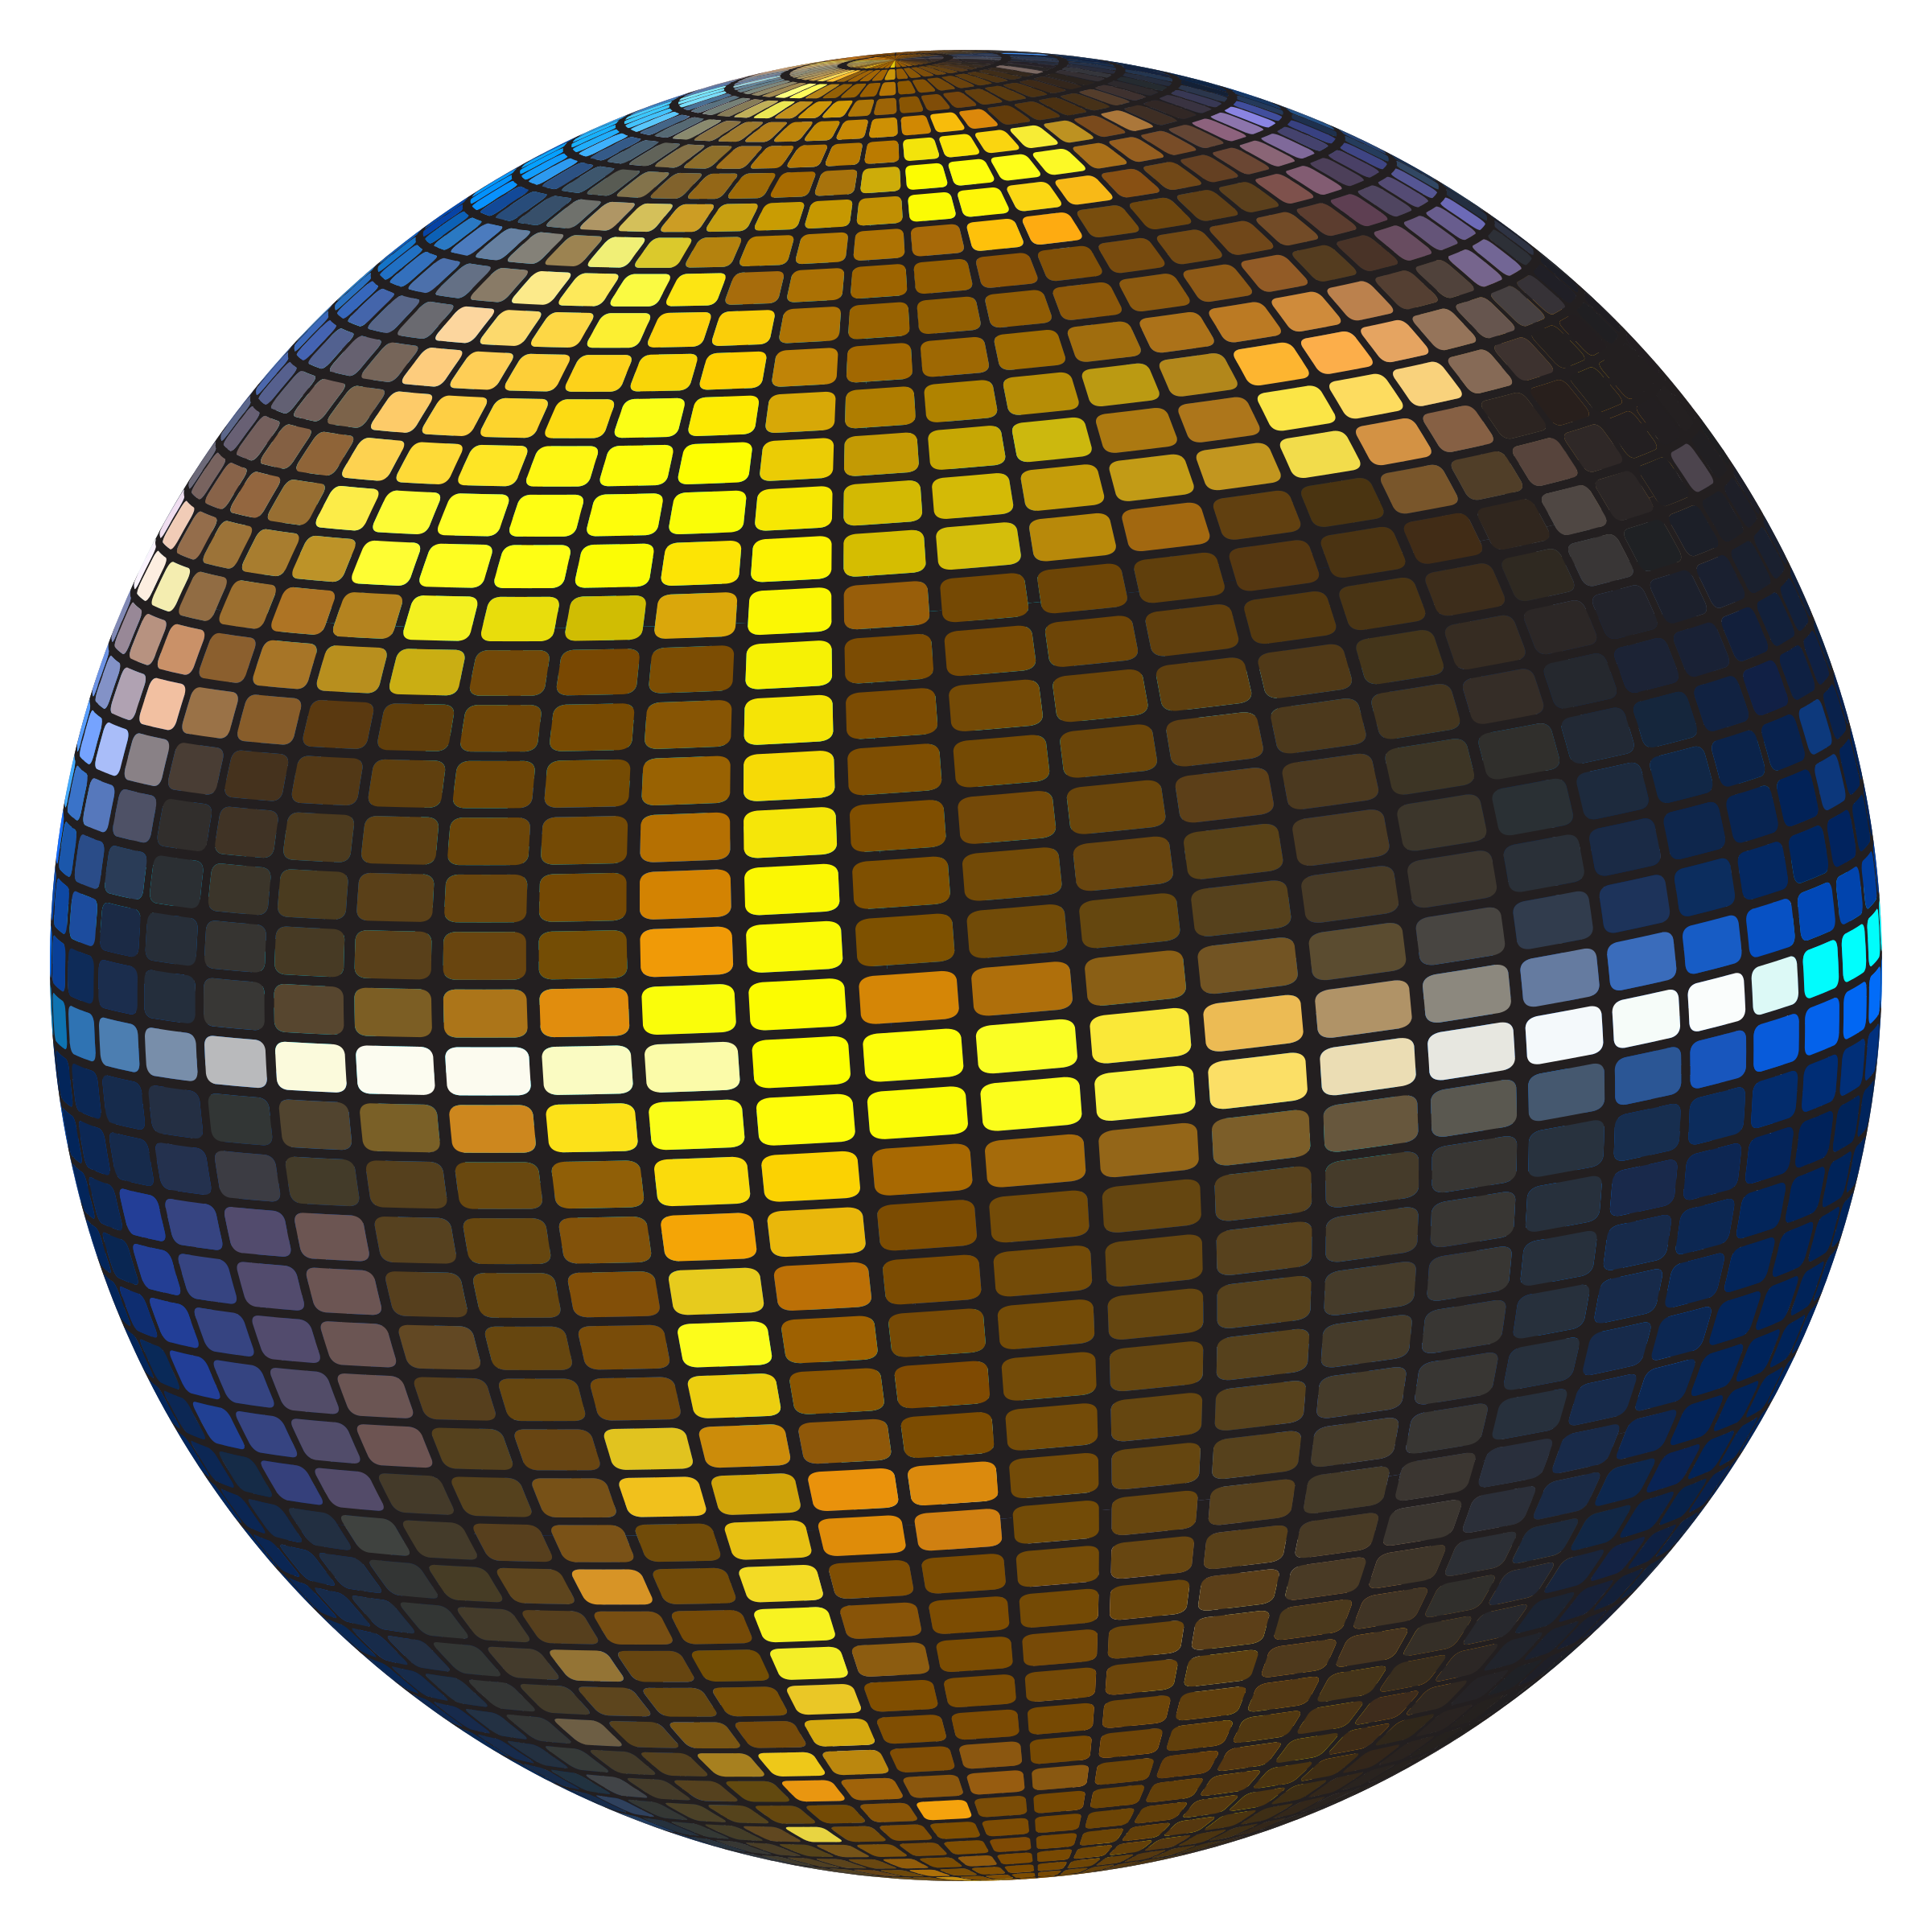 Disco clipart disco ball. Colorful big image png